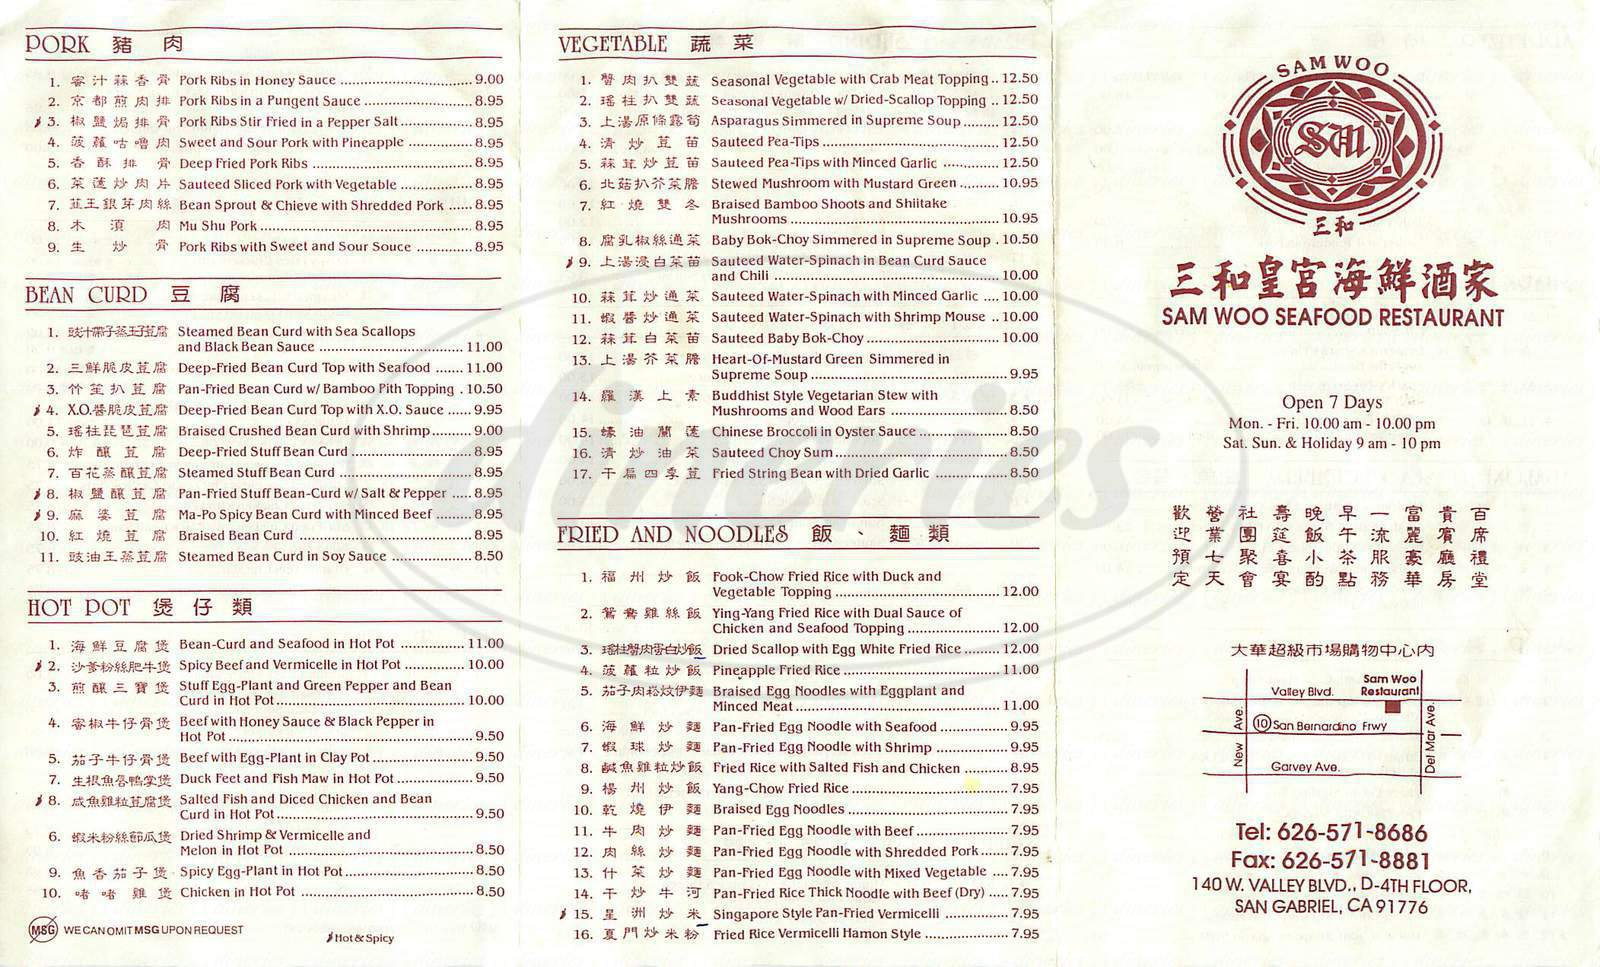 menu for Sam Woo Seafood Restaurant